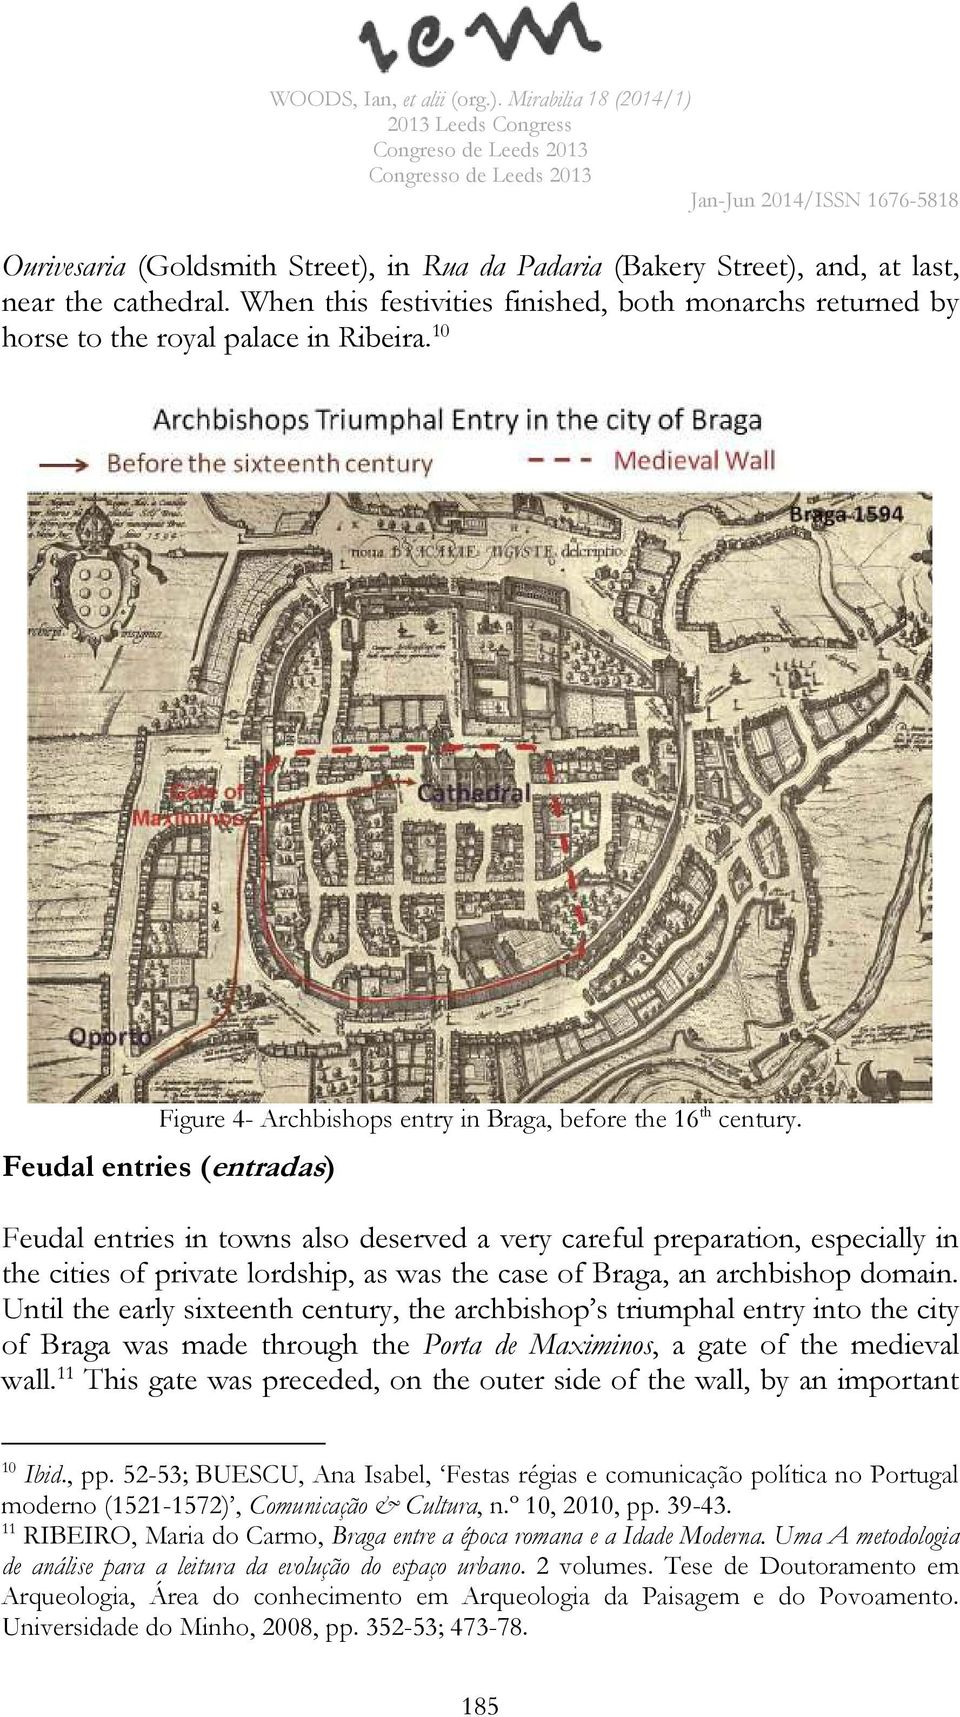 Feudal entries (entradas) Feudal entries in towns also deserved a very careful preparation, especially in the cities of private lordship, as was the case of Braga, an archbishop domain.